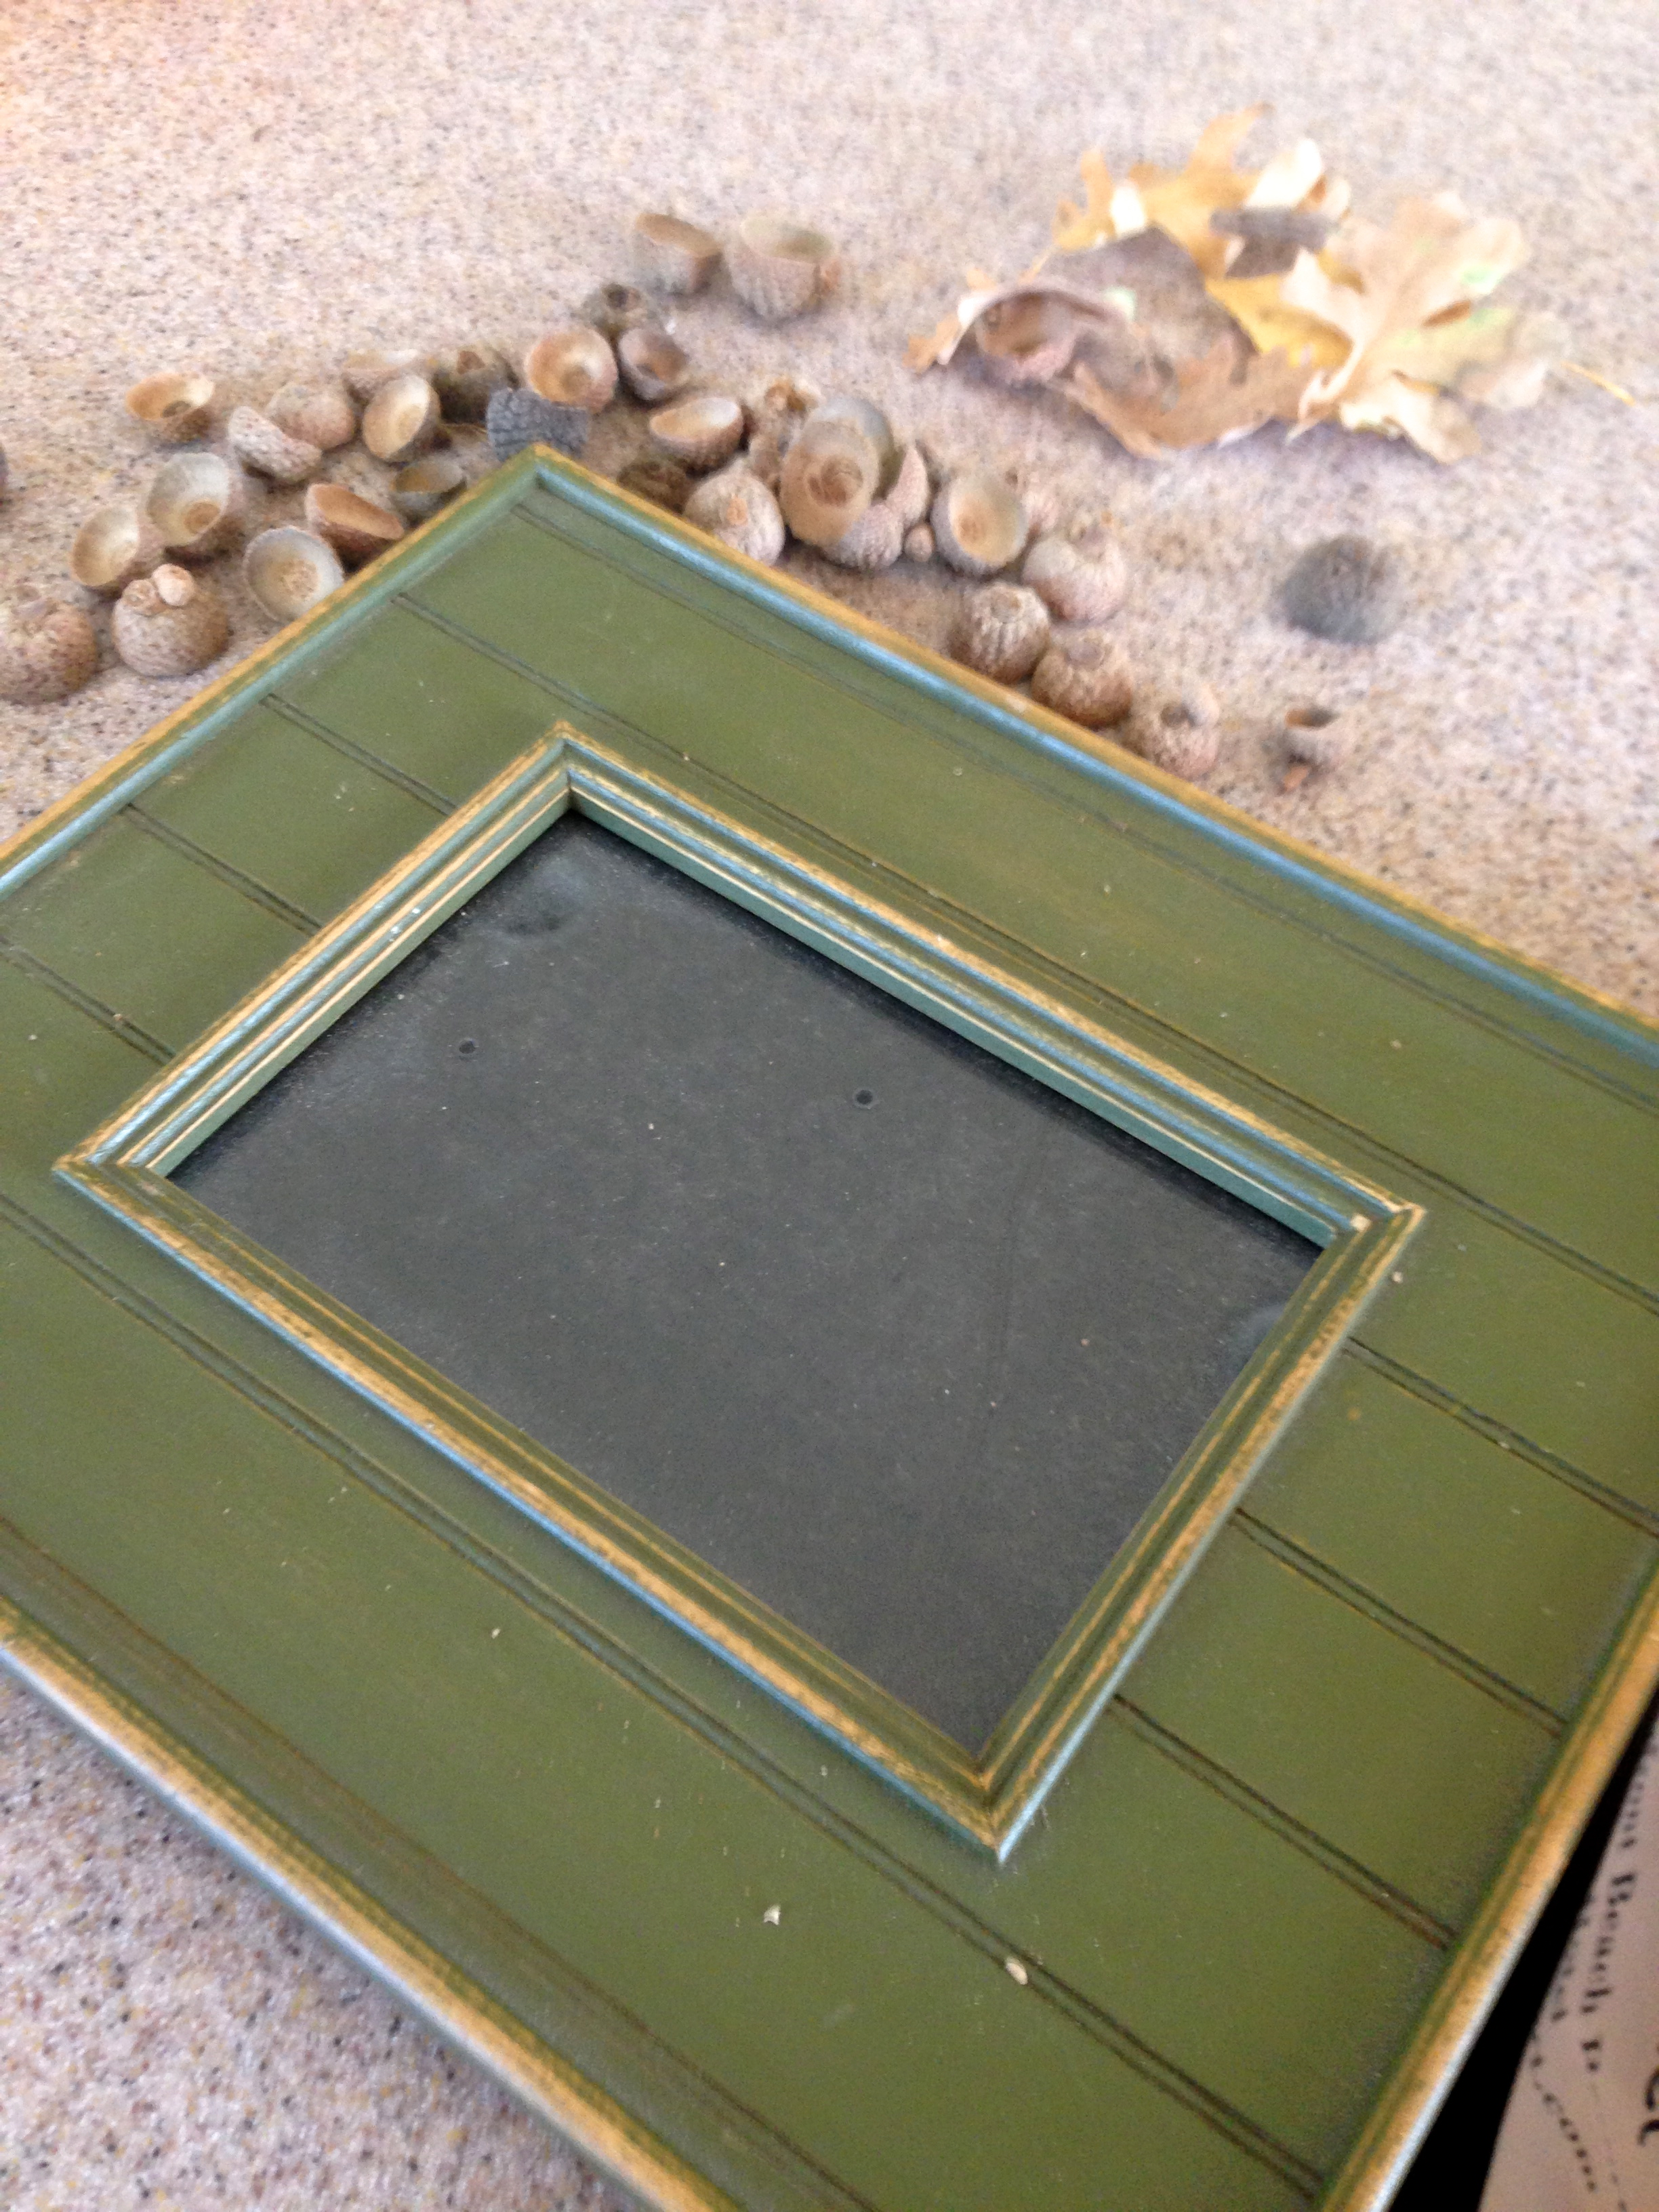 Fall acorn inspired picture frame zest it up i took this plane picture frame jeuxipadfo Gallery